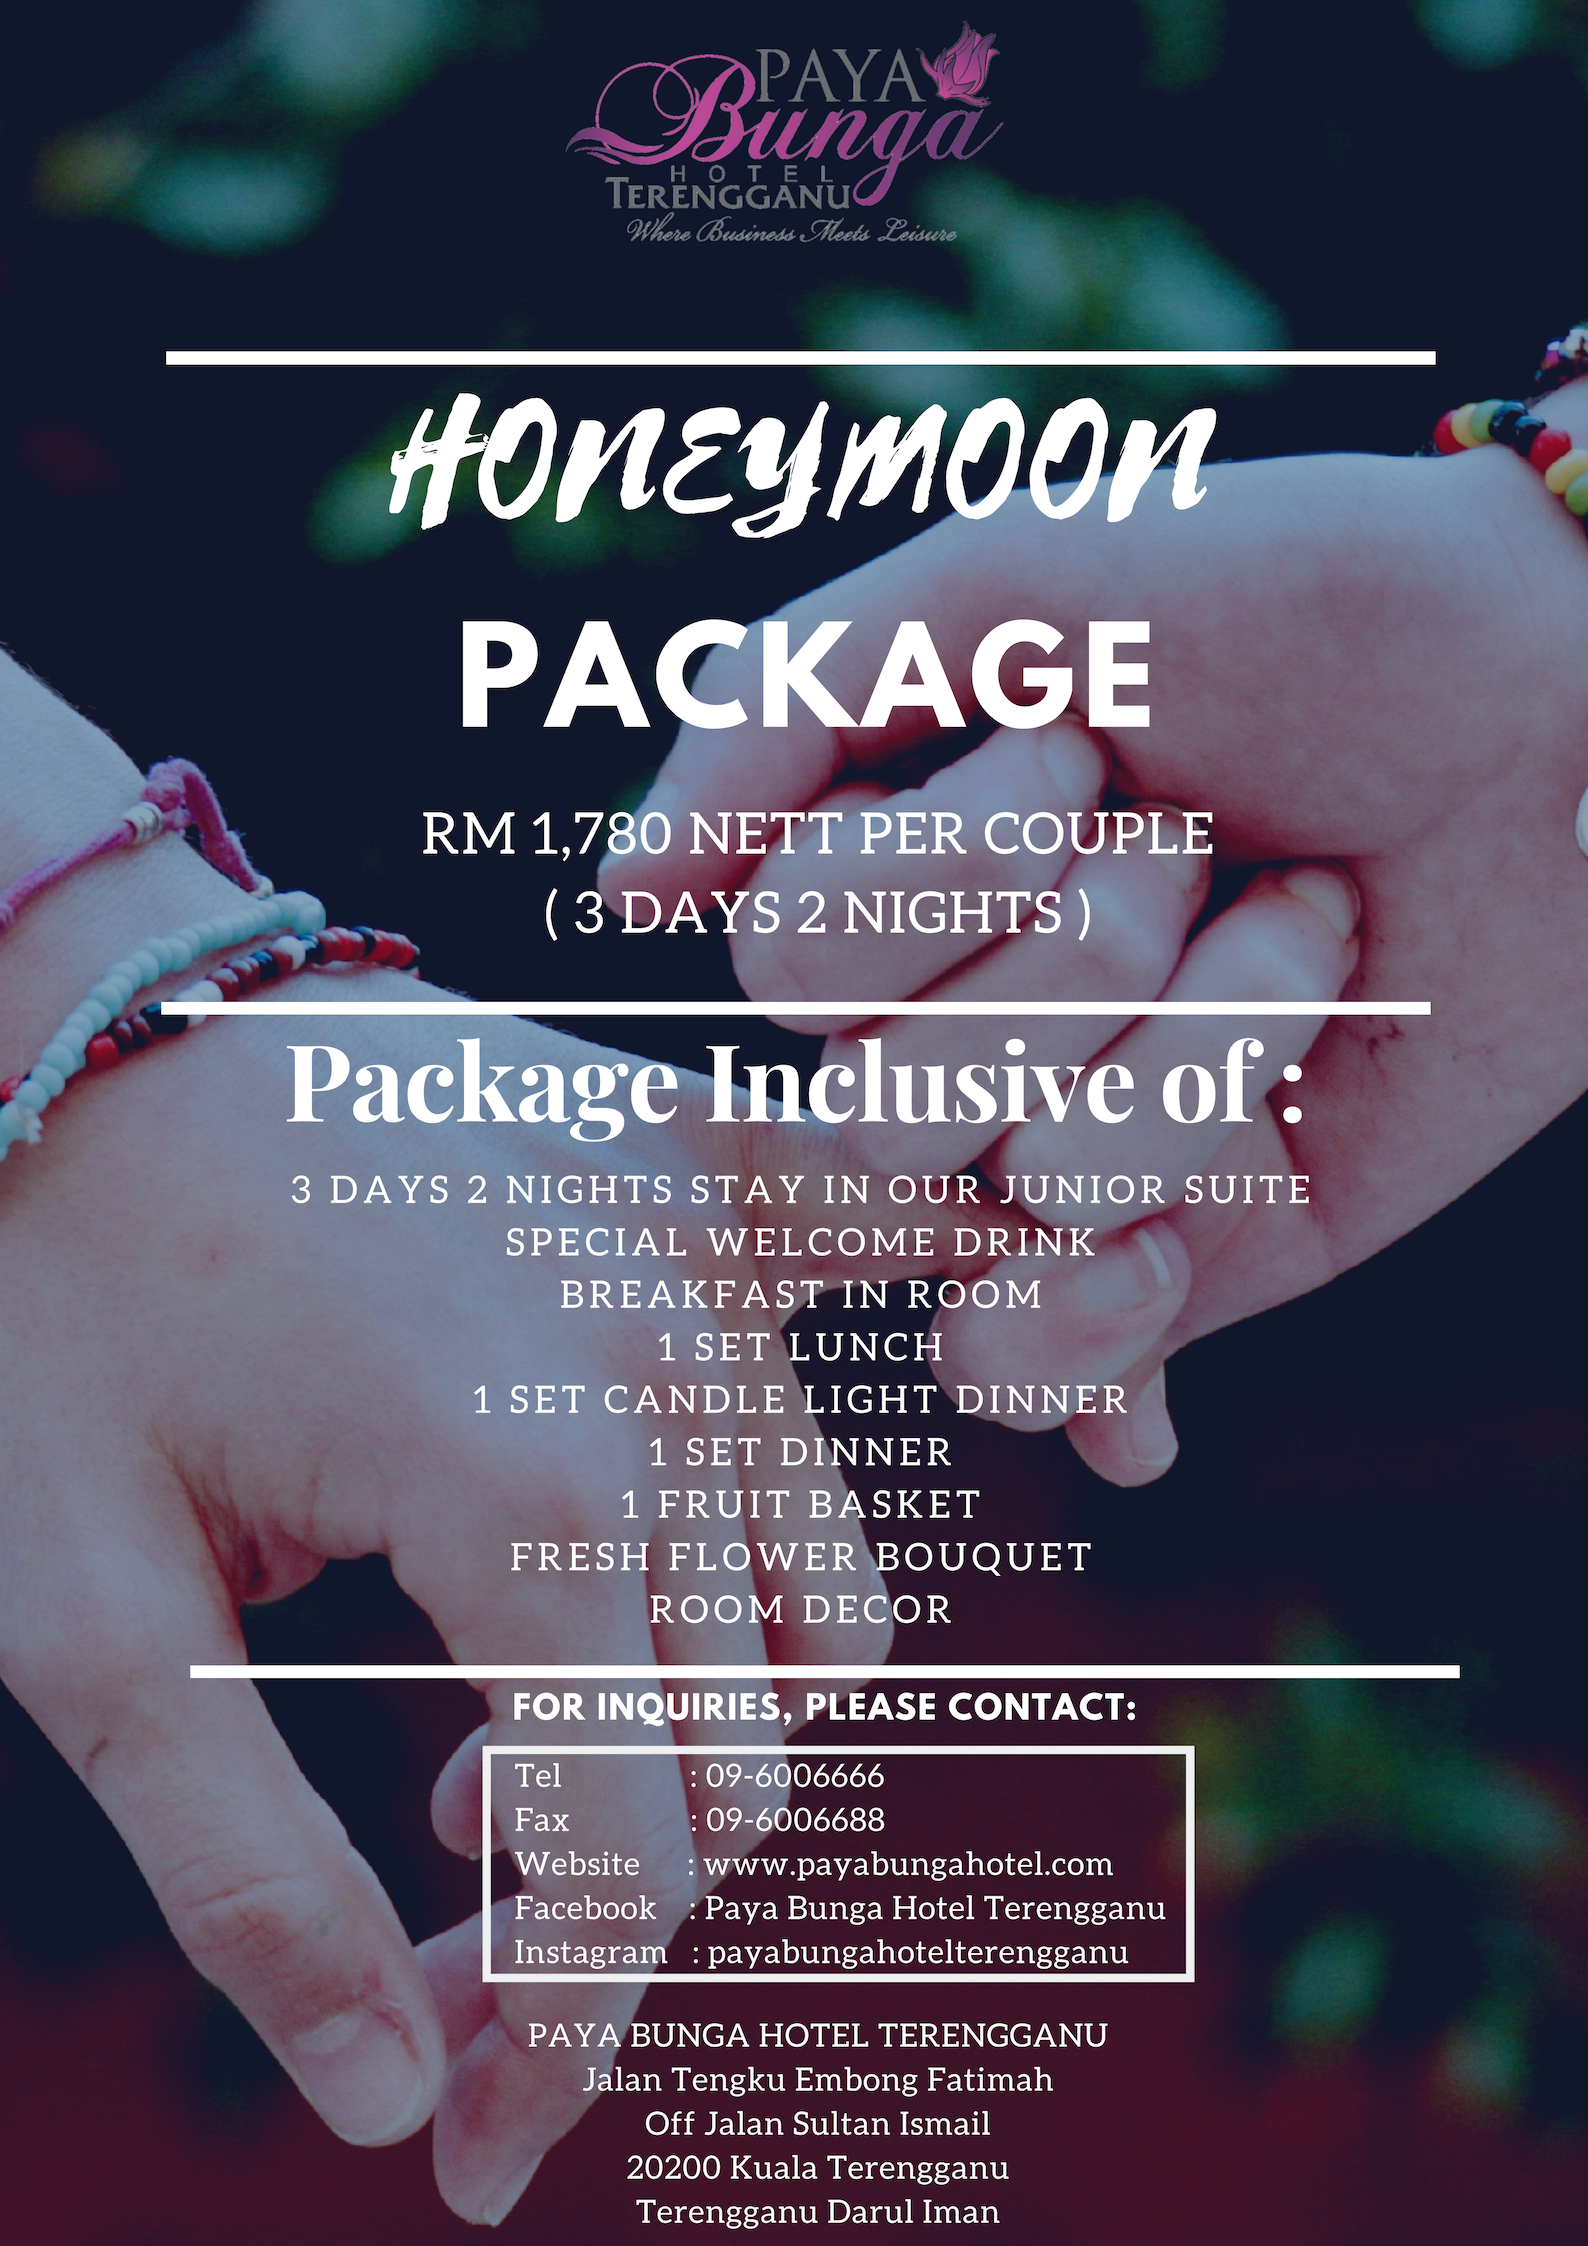 PB Honeymoon Package